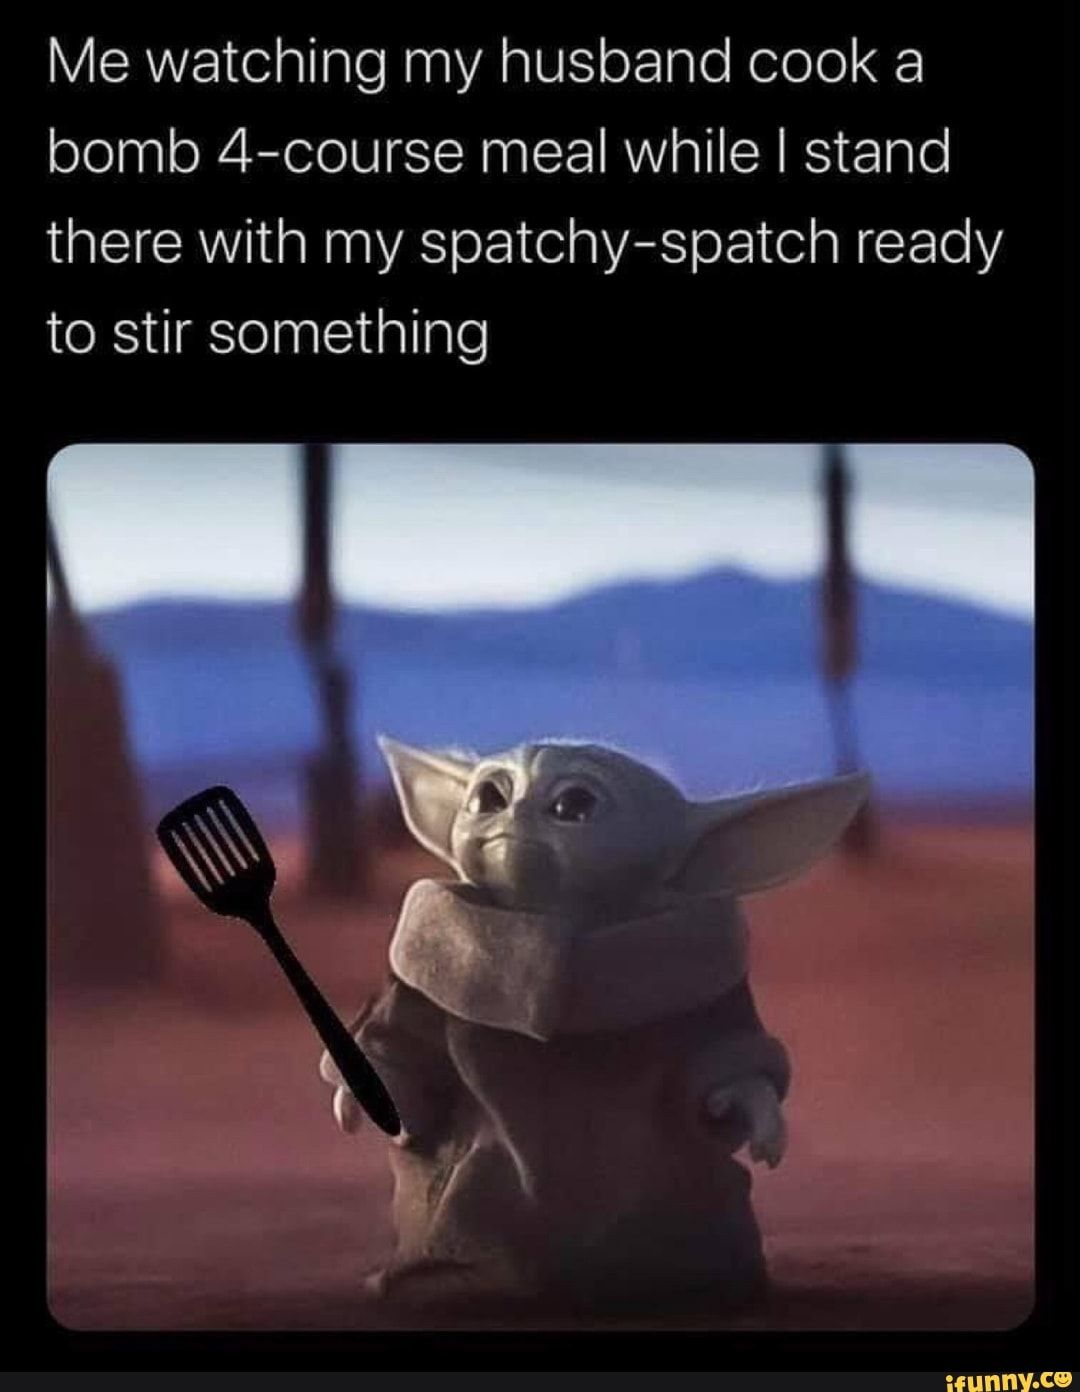 Me Watching My Husband Cook A Bomb 4 Course Meal While I Stand There With My Spatchy Spatch Ready To Stir Something Ifunny Yoda Funny Yoda Meme Funny Memes